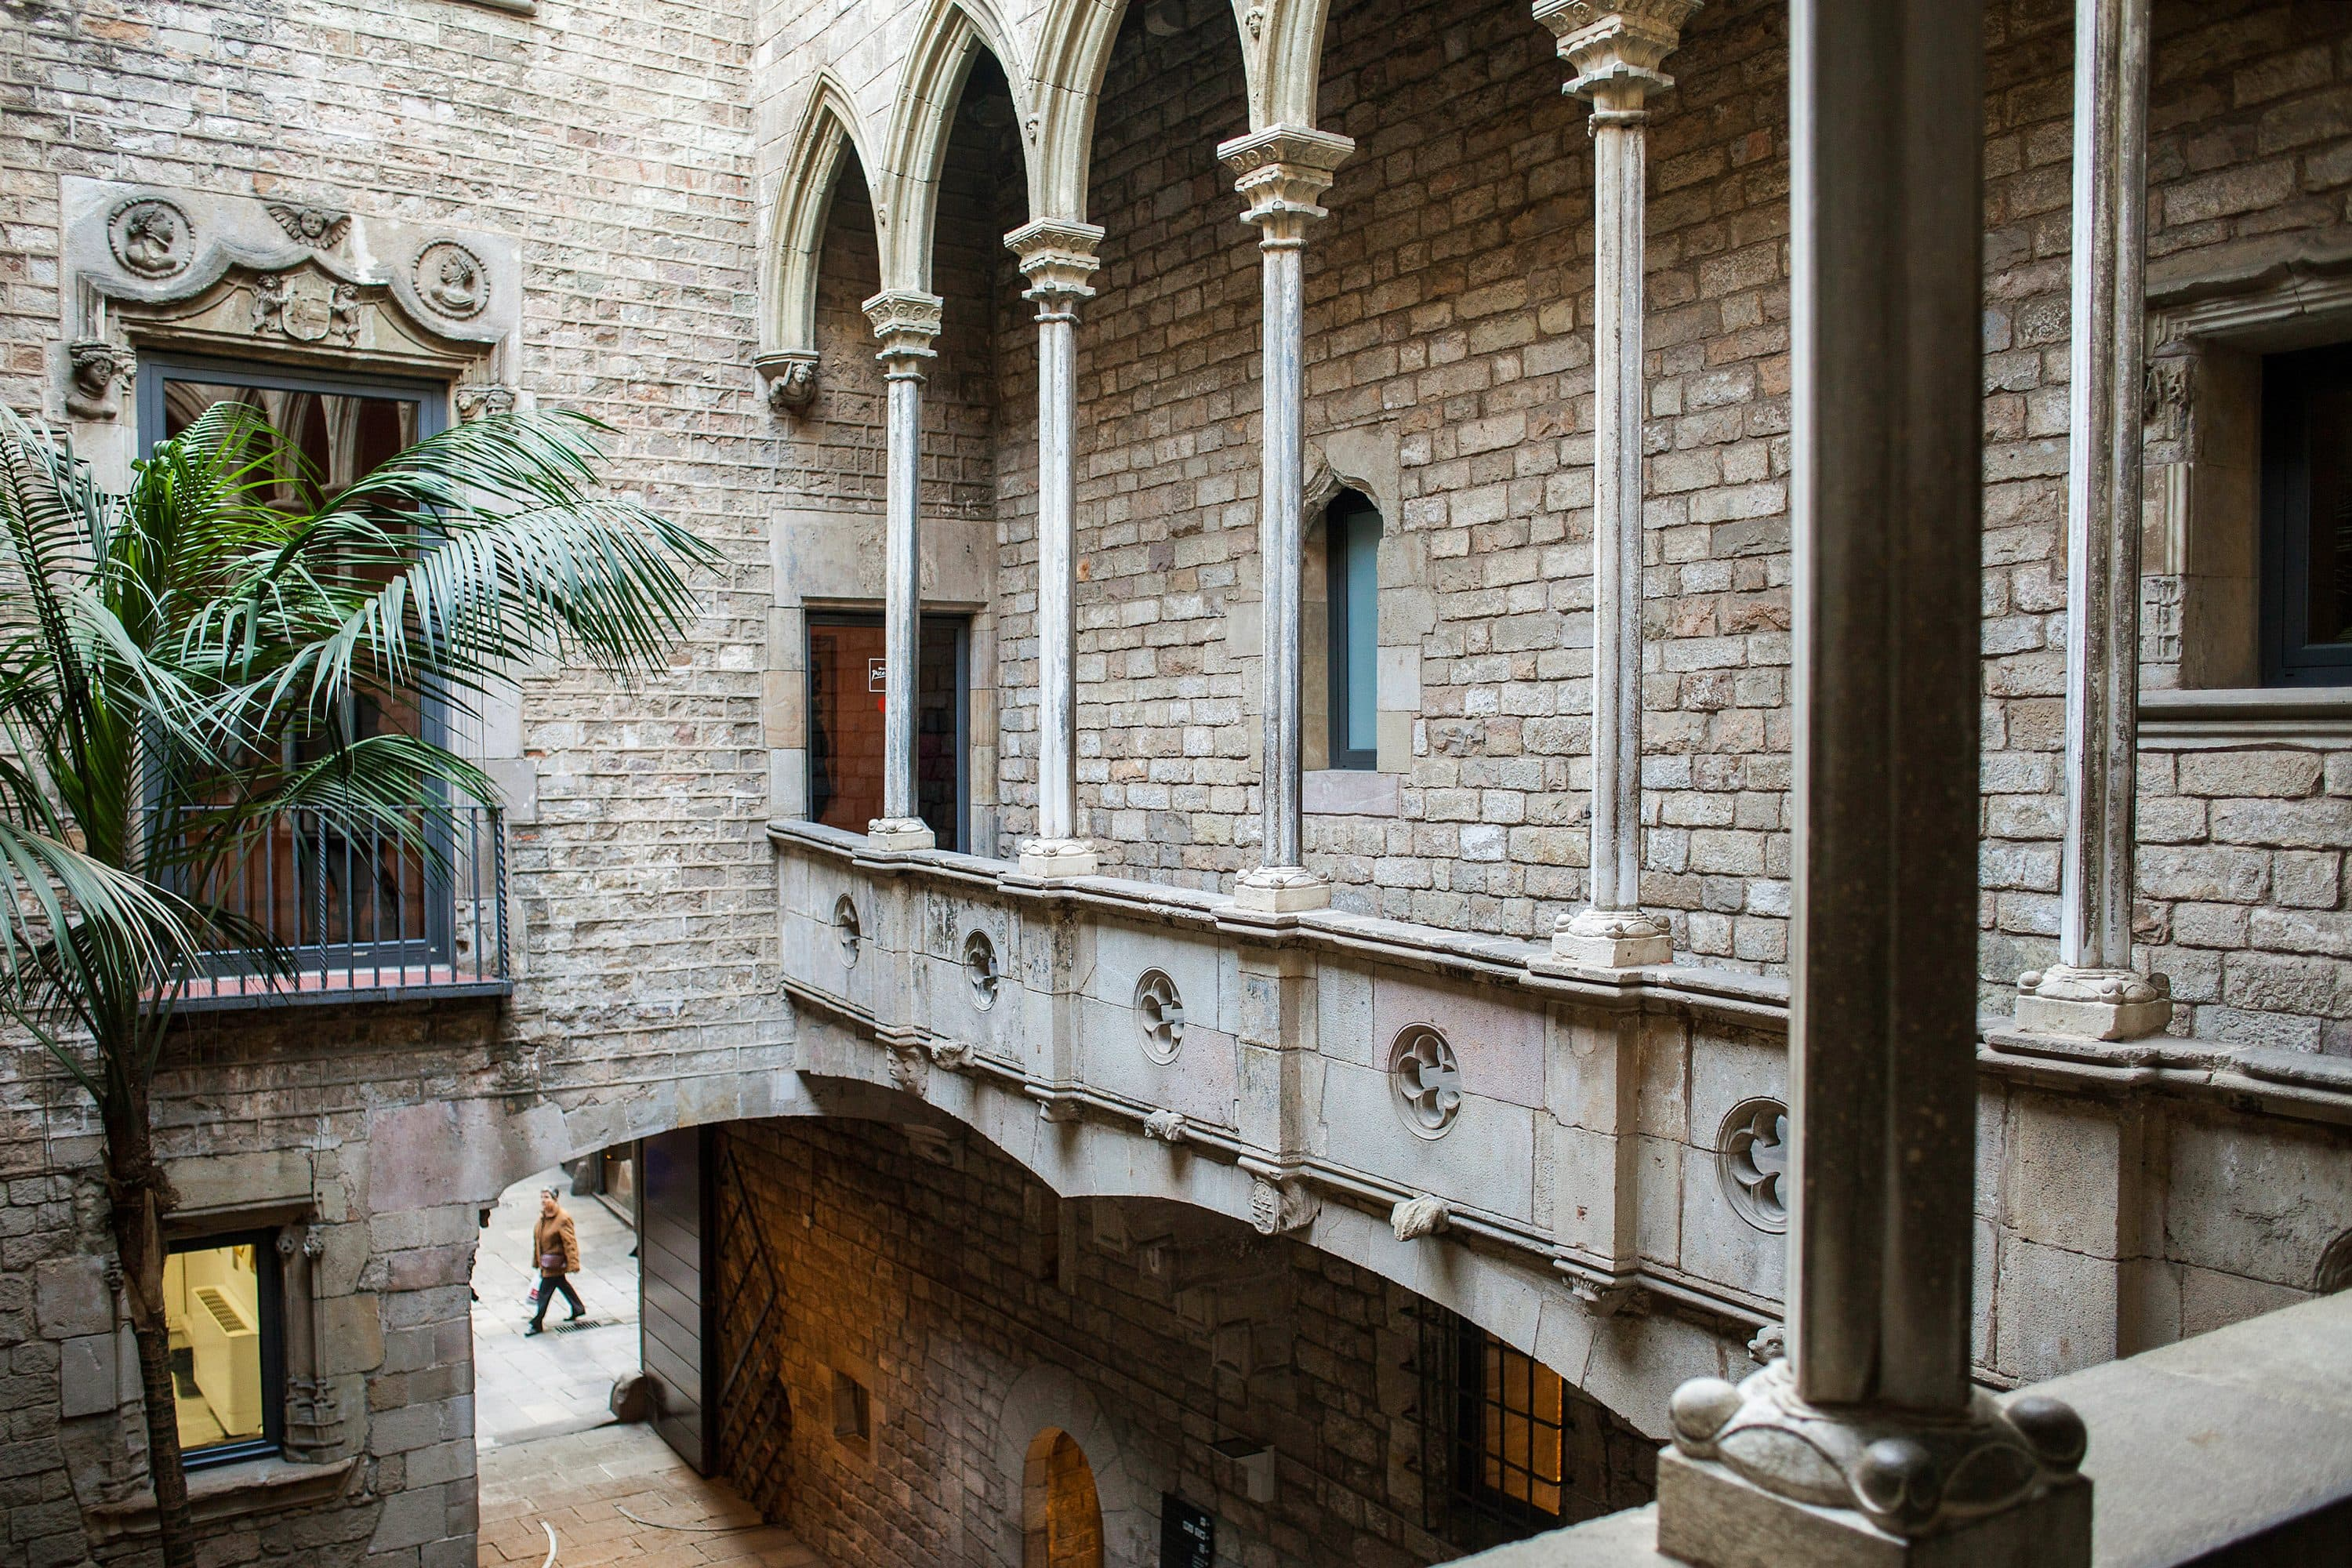 Picasso Museum courtyard, Barcelona